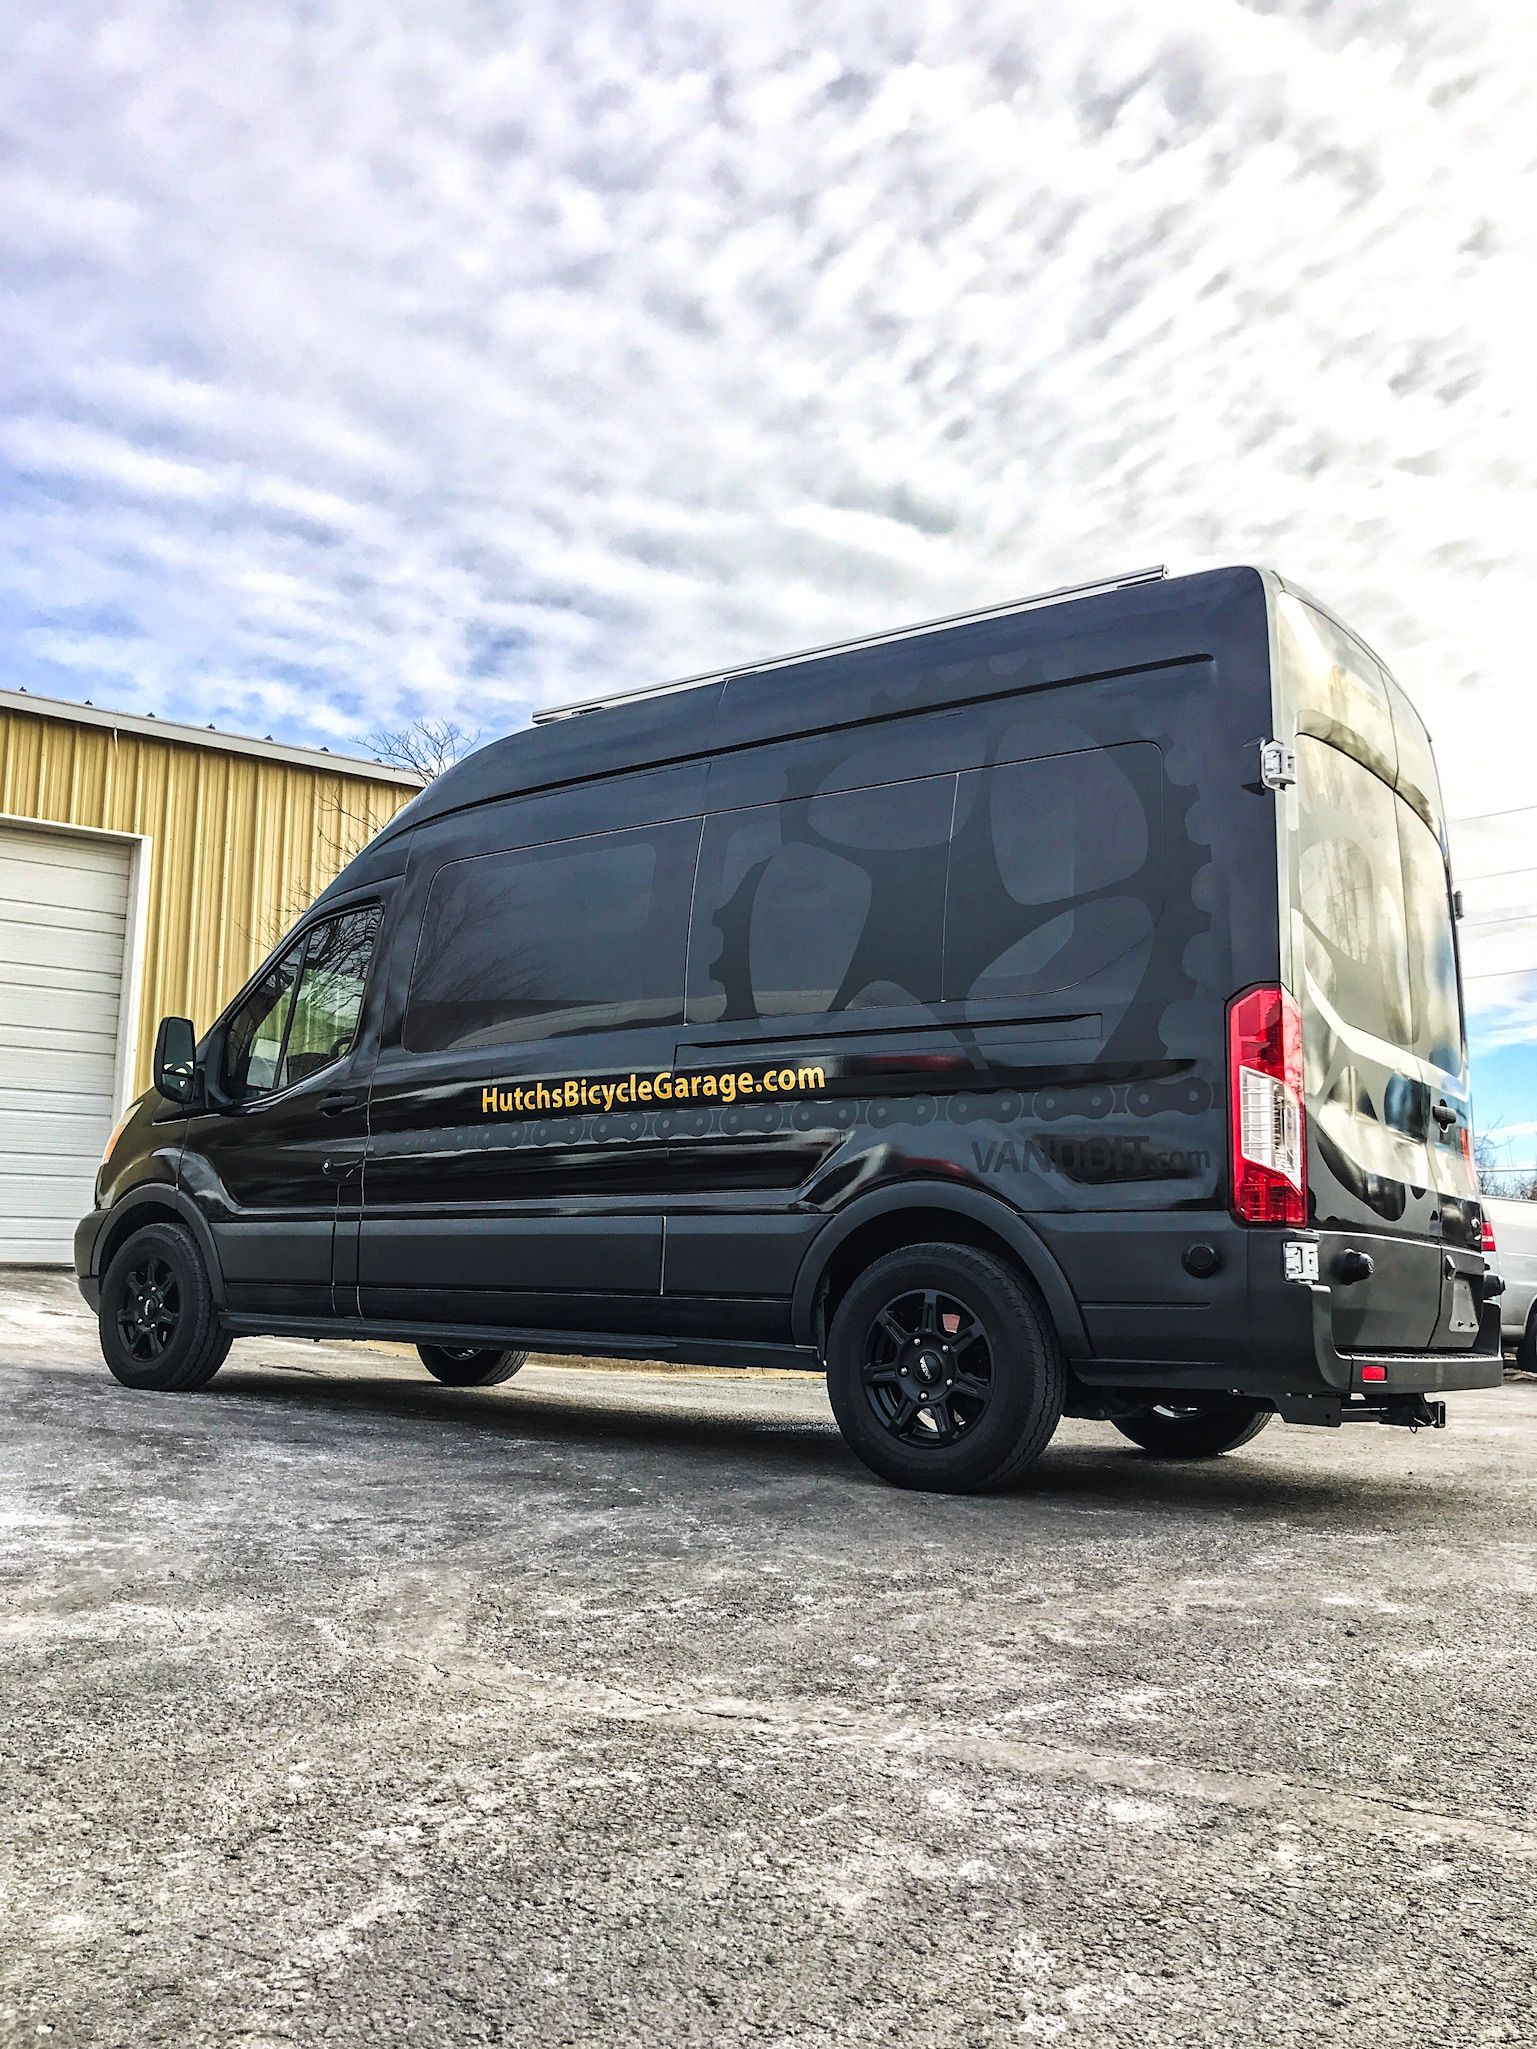 Vandoit Does Customgraphics To Set Your Van Apart Graphics Decals Vandecals Vangraphics Vanlife Vanlifediaries Vanliving Van Life Ford Transit Van